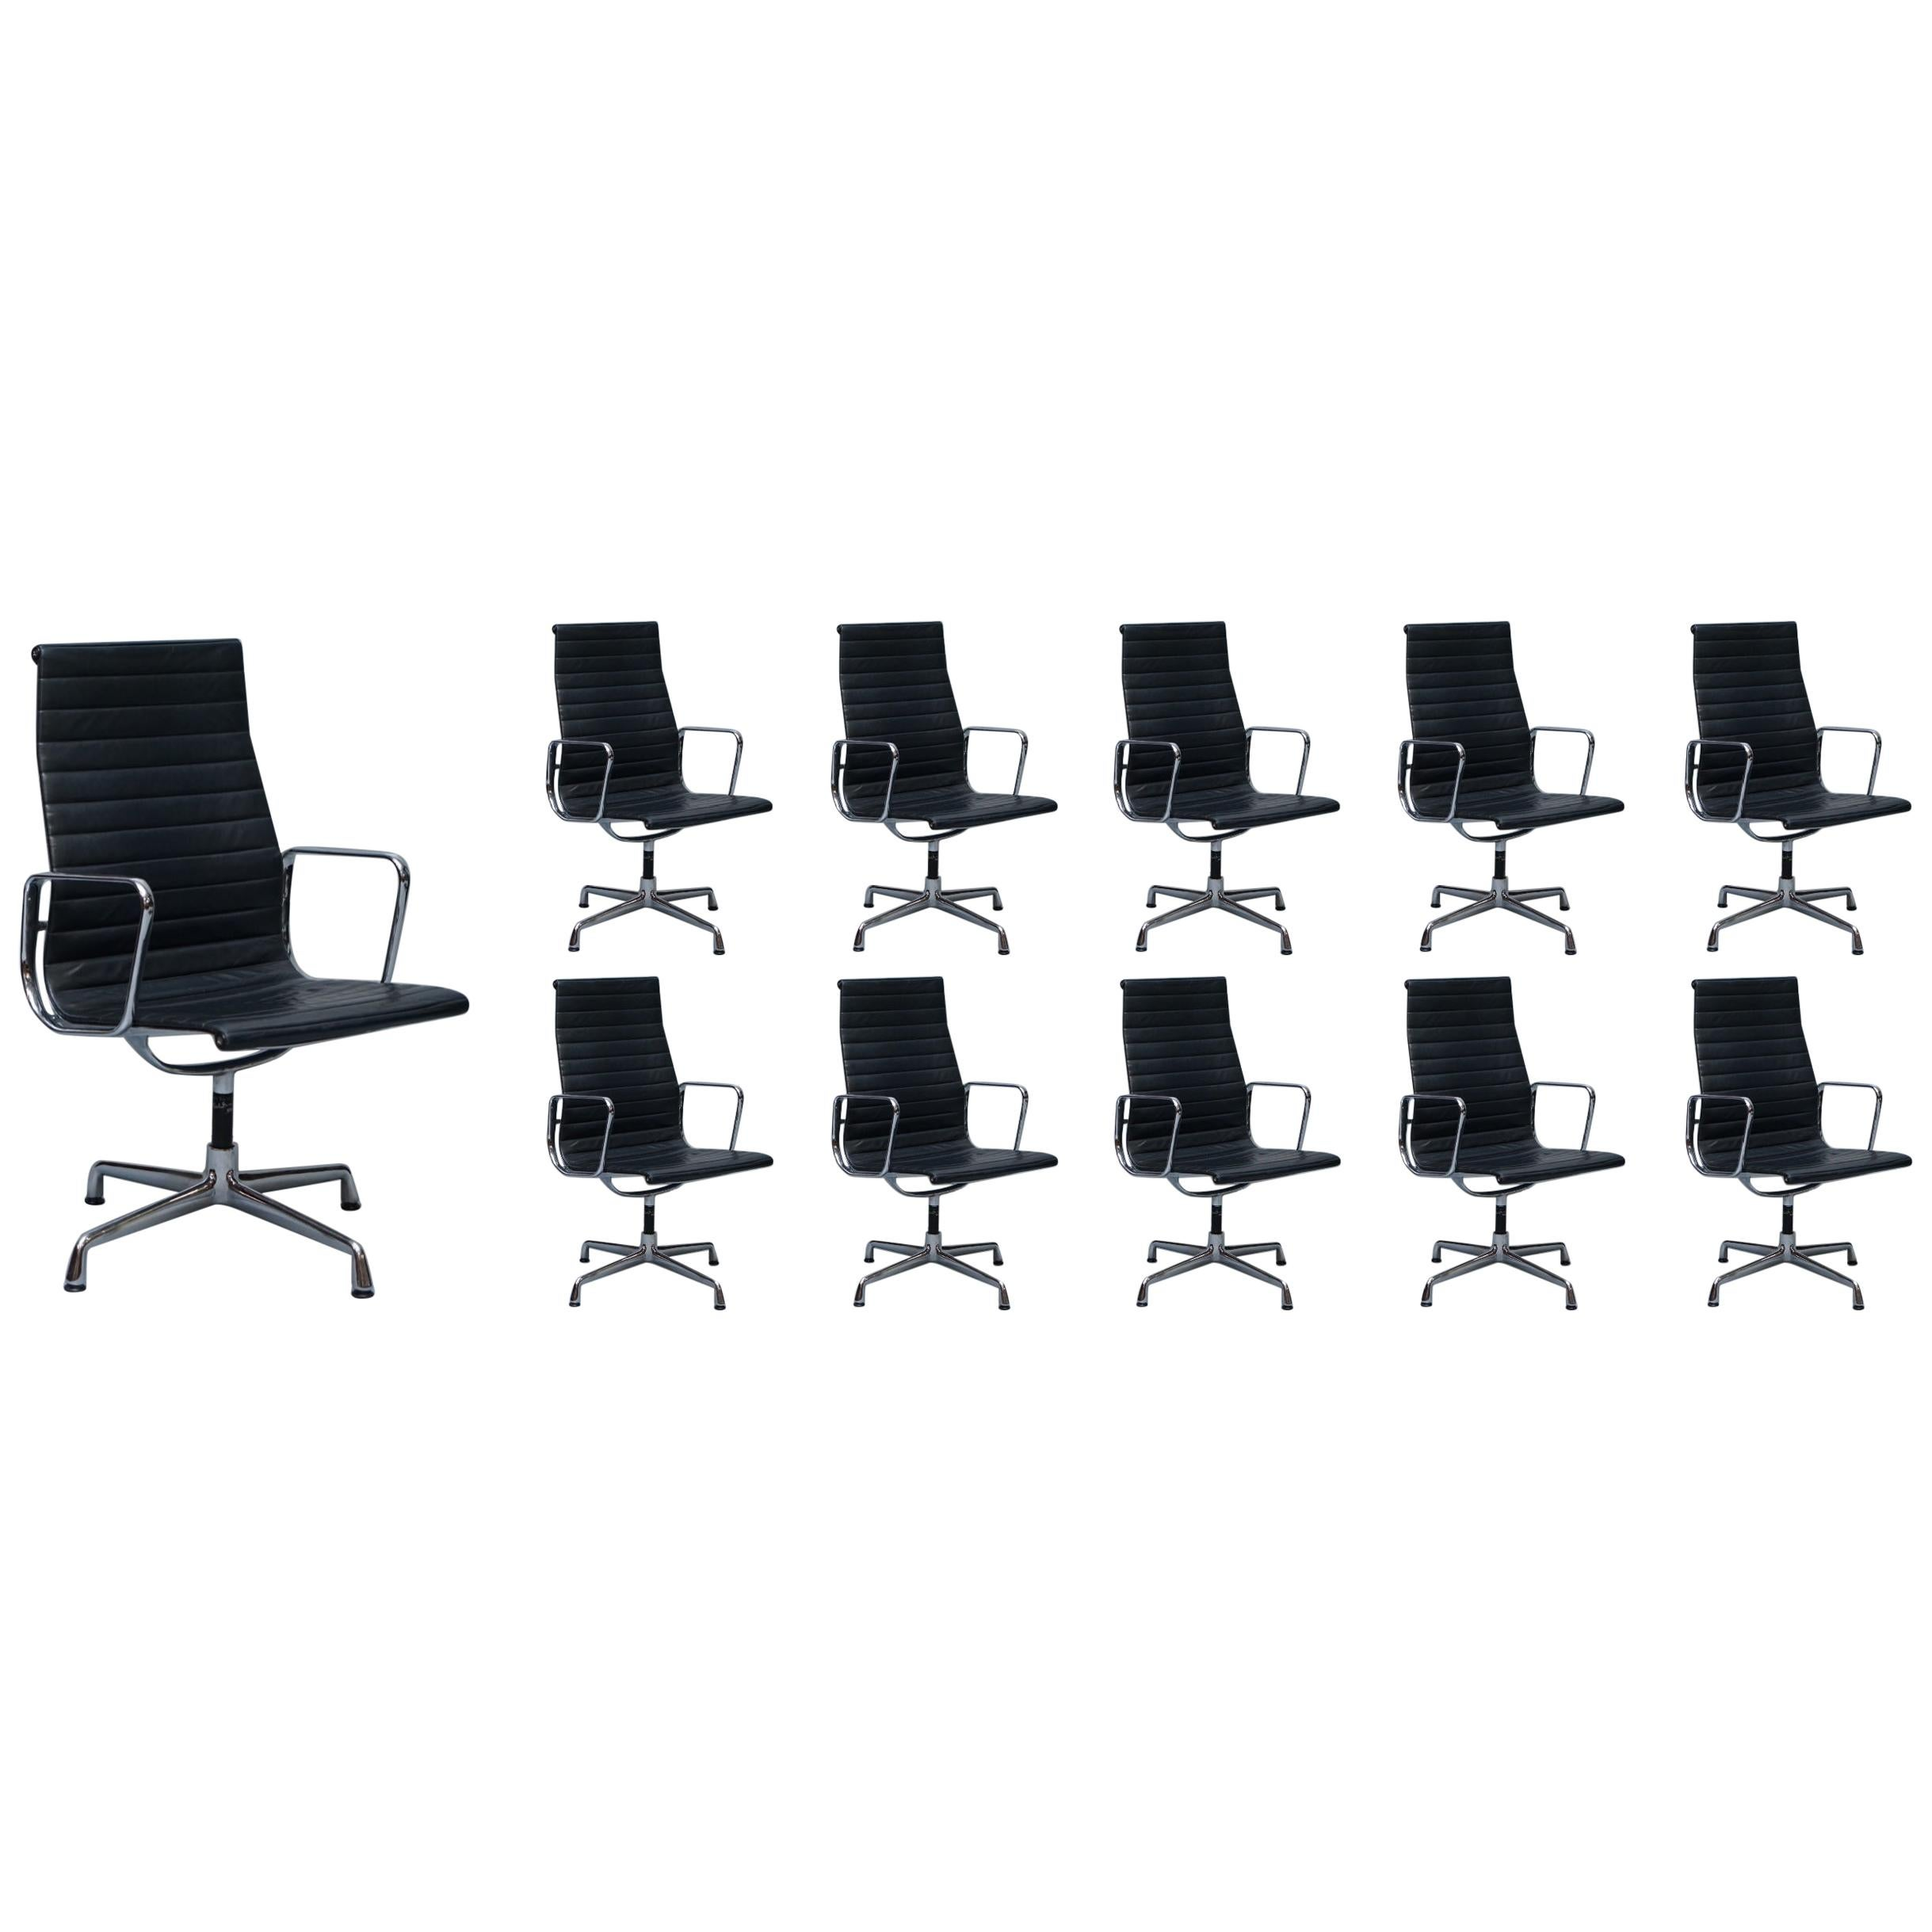 1 of 10 Vitra Eames Herman Miller Black Leather Swivel Office Chairs